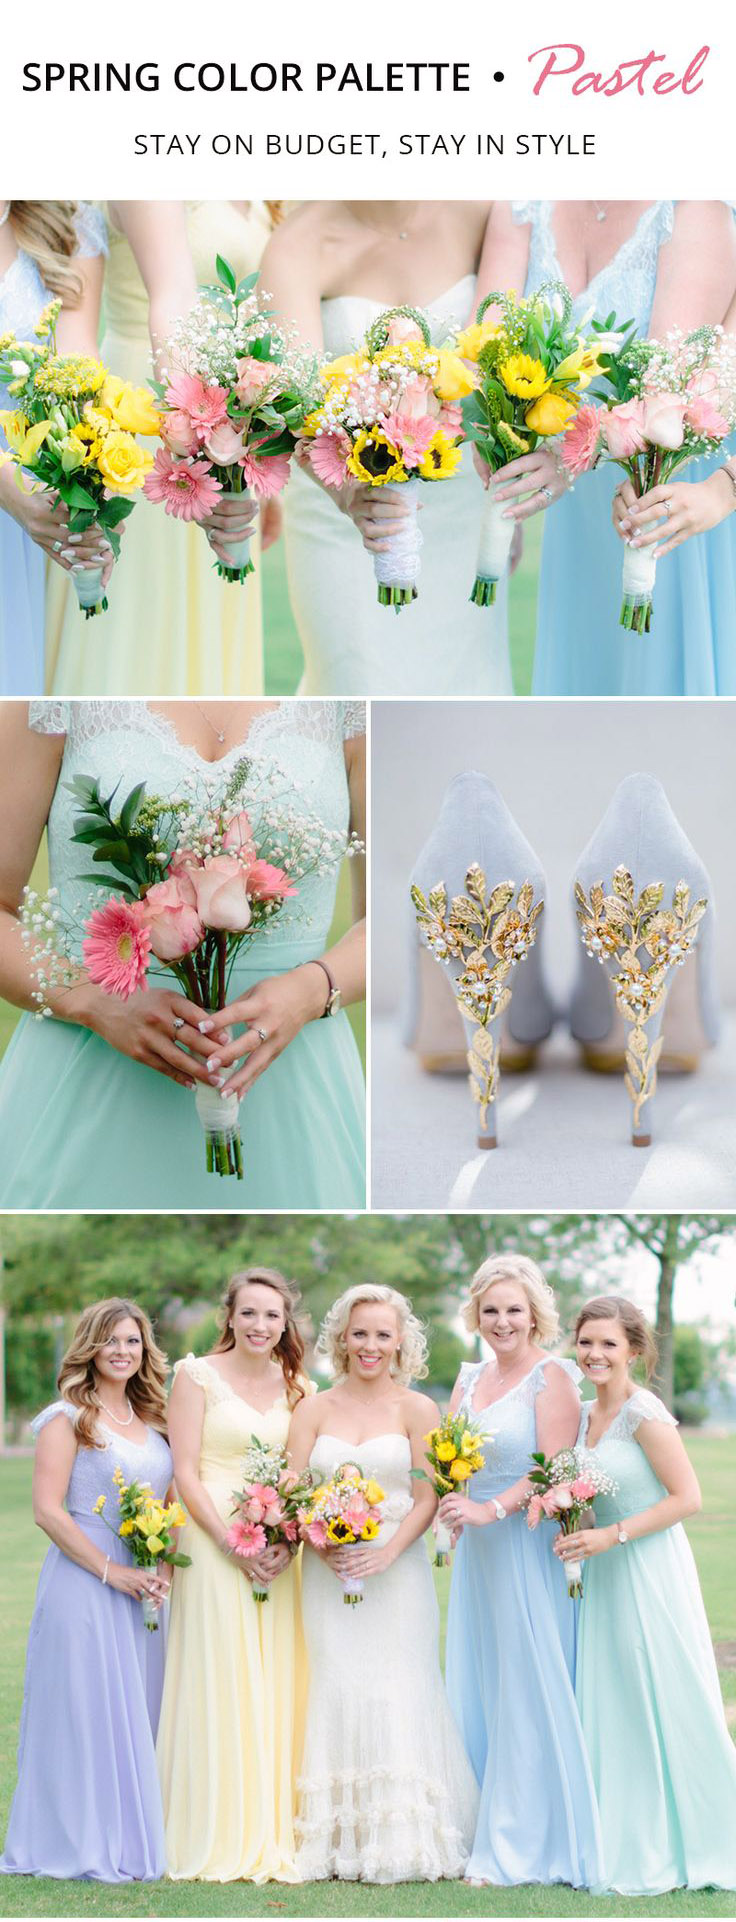 Trending Spring Color Palette for Your Bridesmaid Dresses-pastel